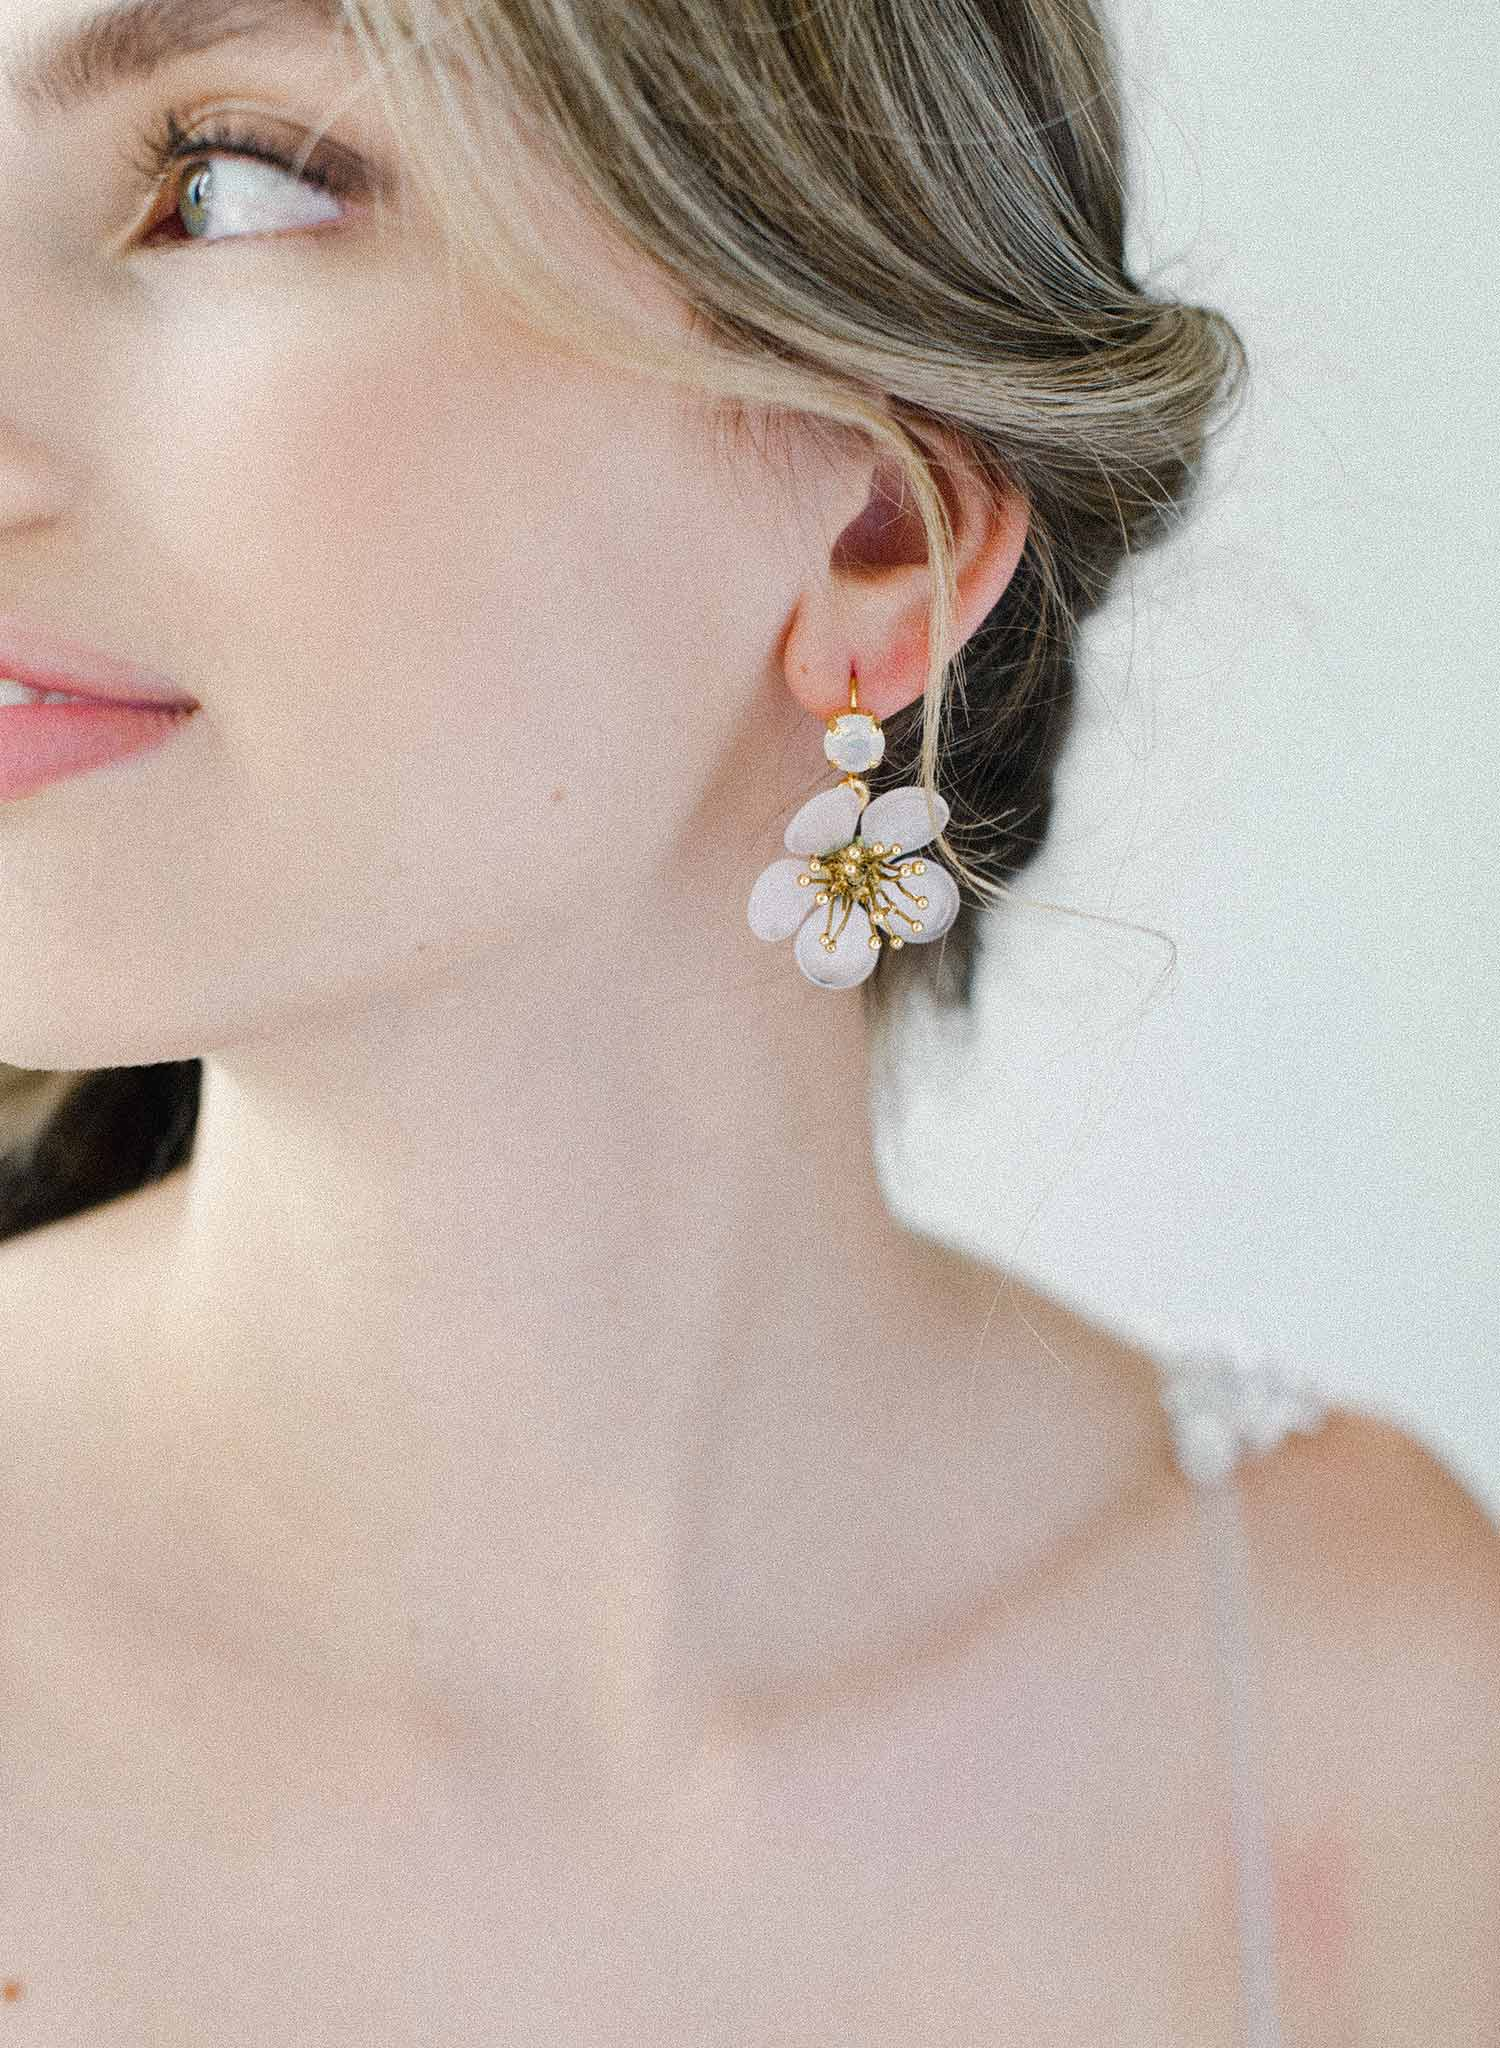 Plum blossoms dainty earrings - Style #2033